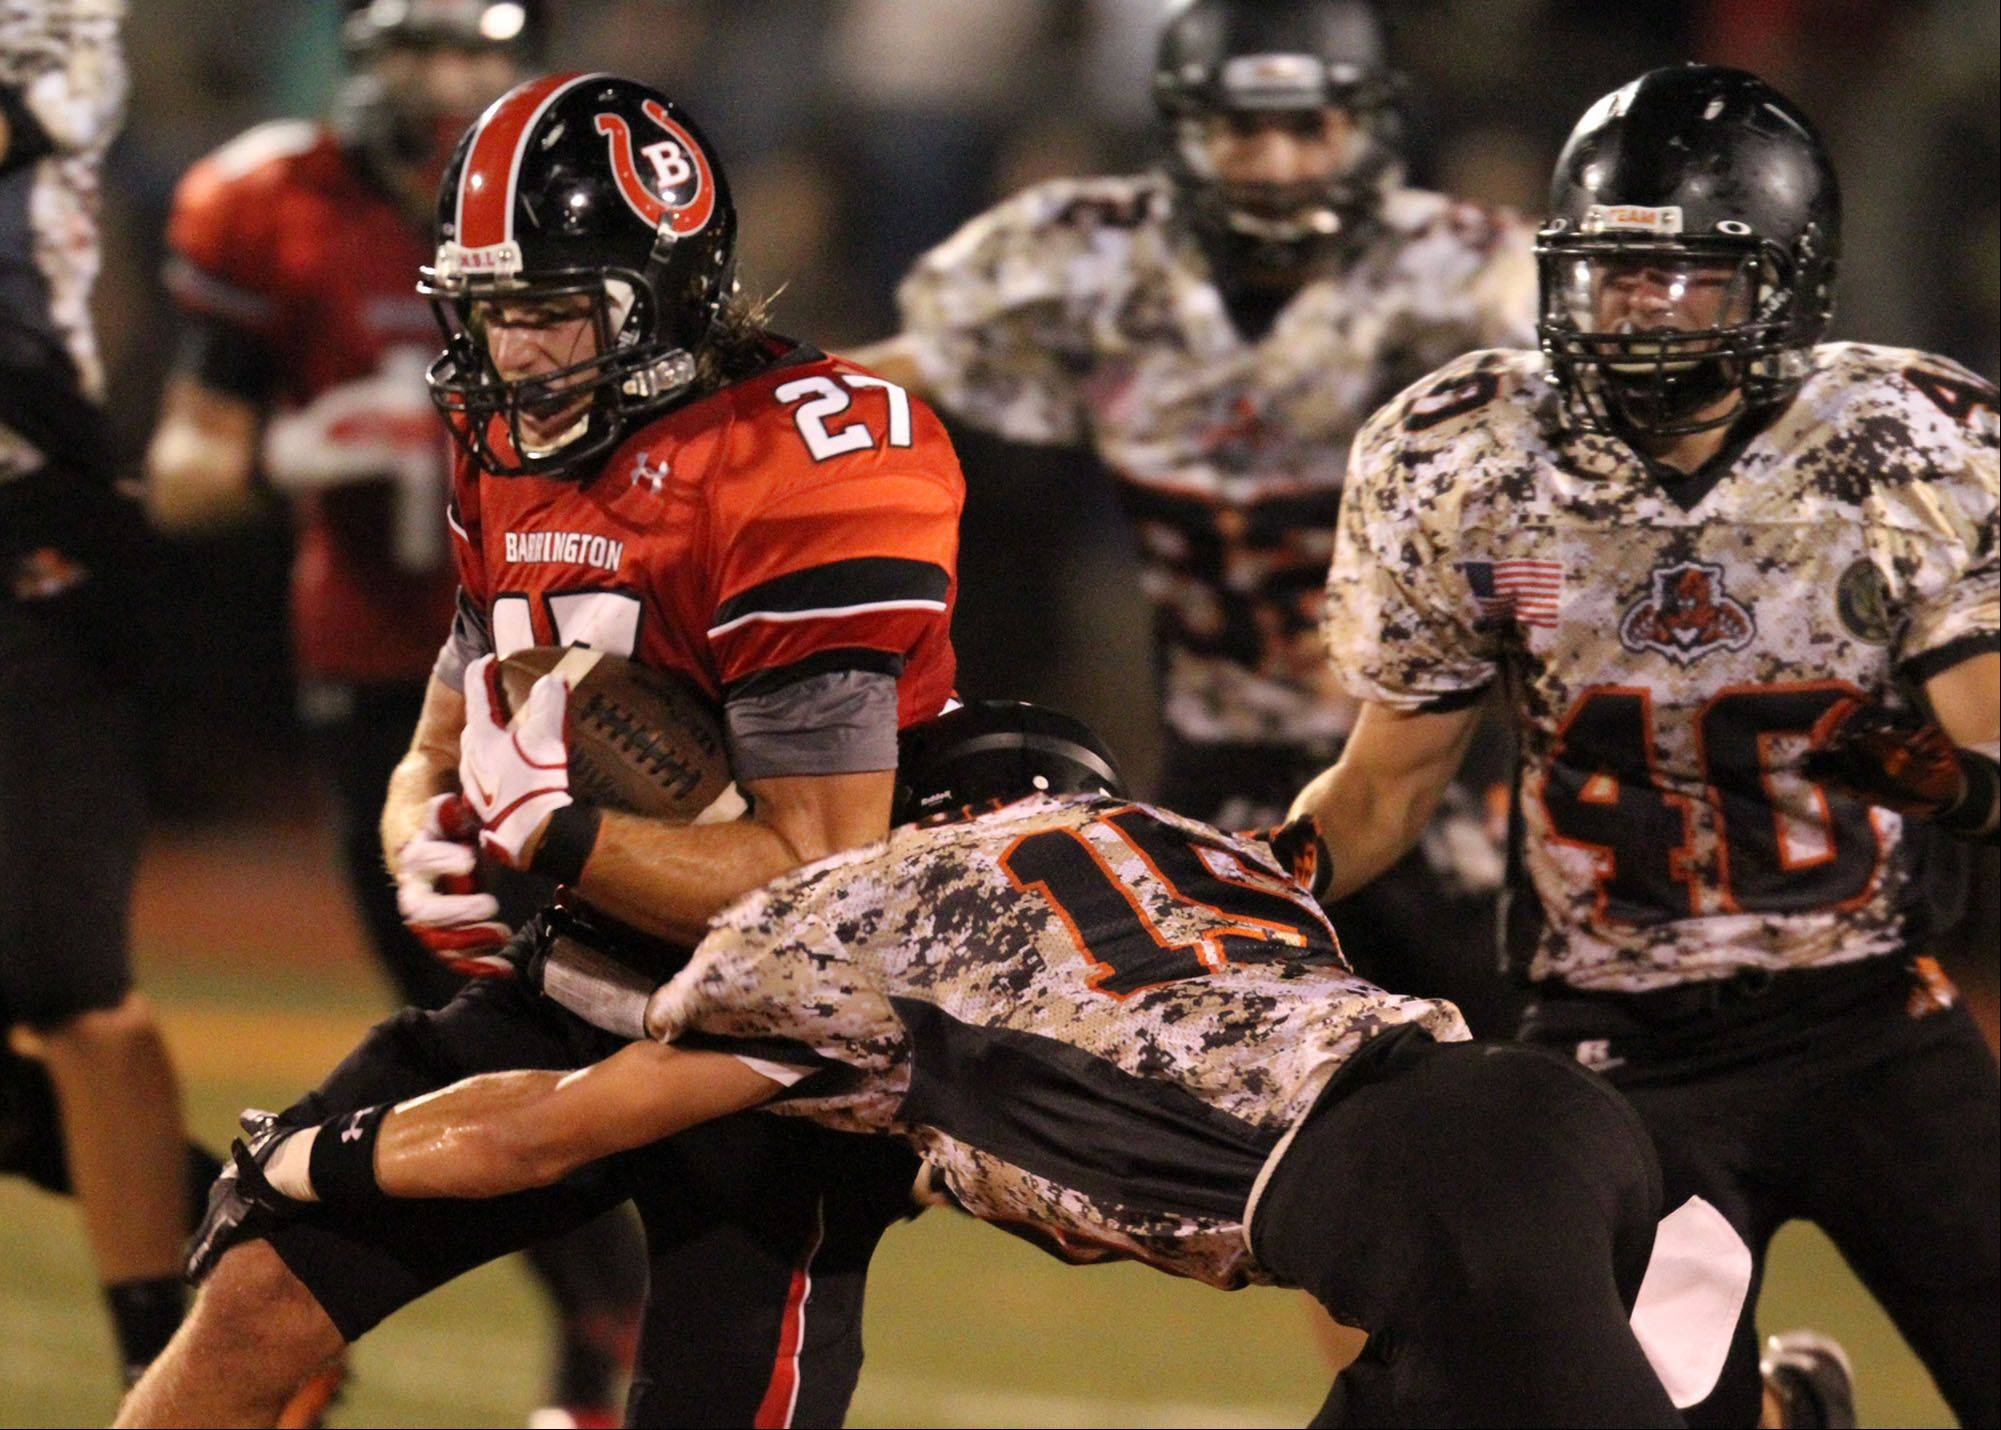 Barrington's Sam Handler is pulled down by Libertyville defender AJ Schmidt at Libertyville on Friday, August 26th.